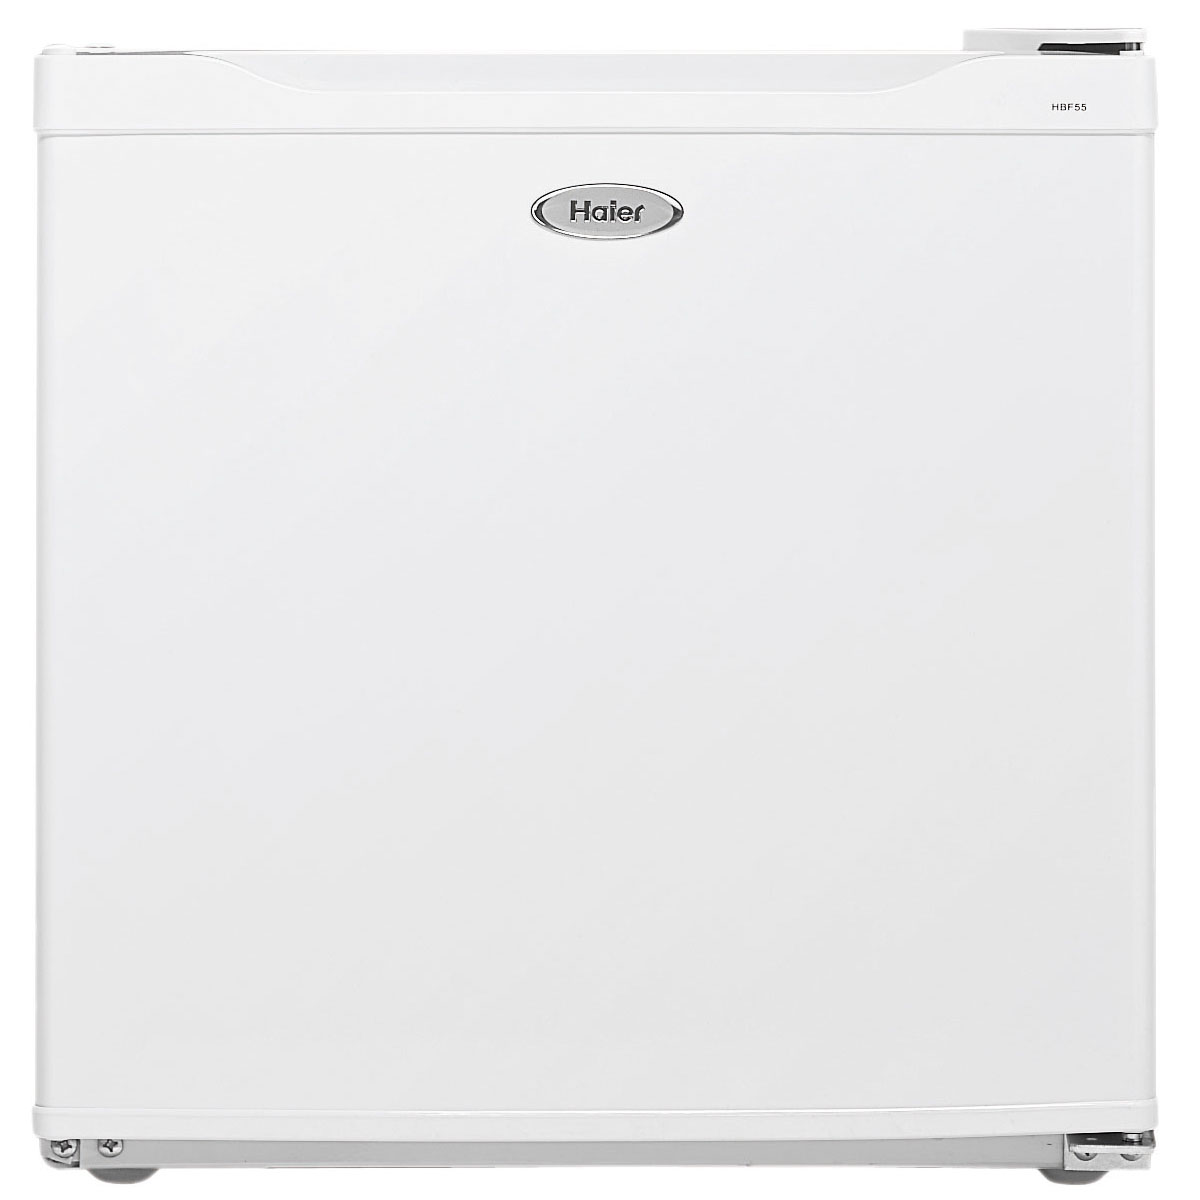 Haier HBF55W 50L Bar Fridge